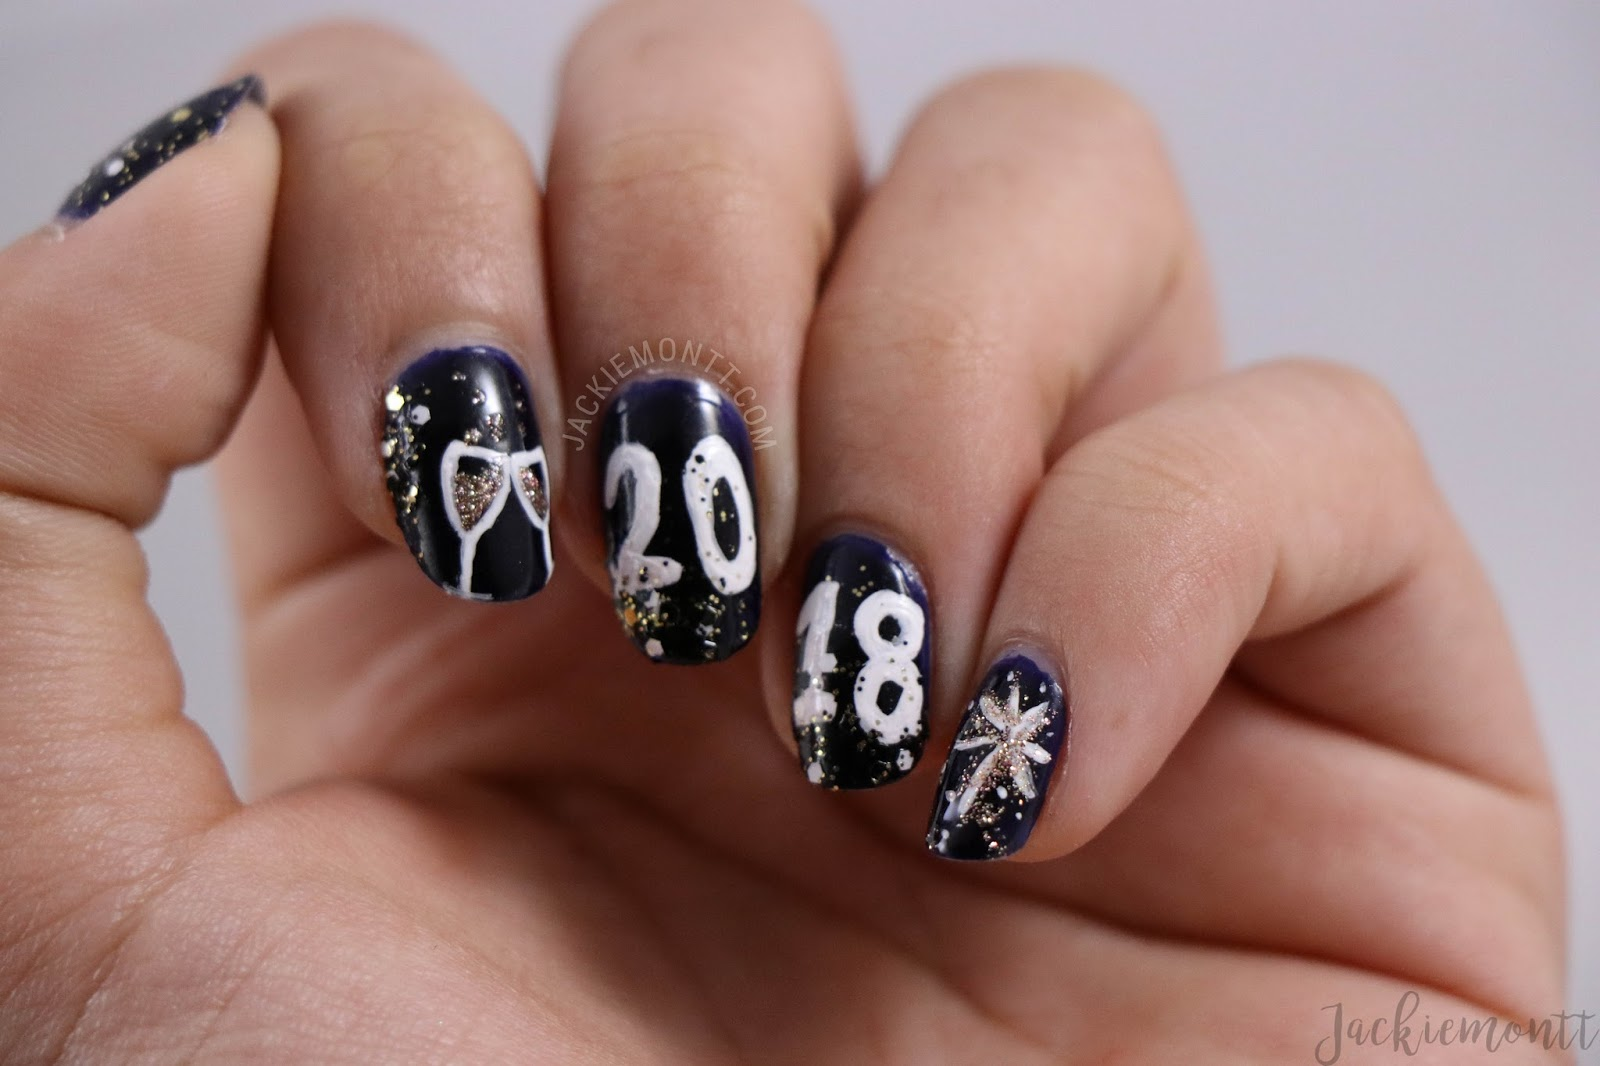 New Years Eve Nail Art Jackiemontt